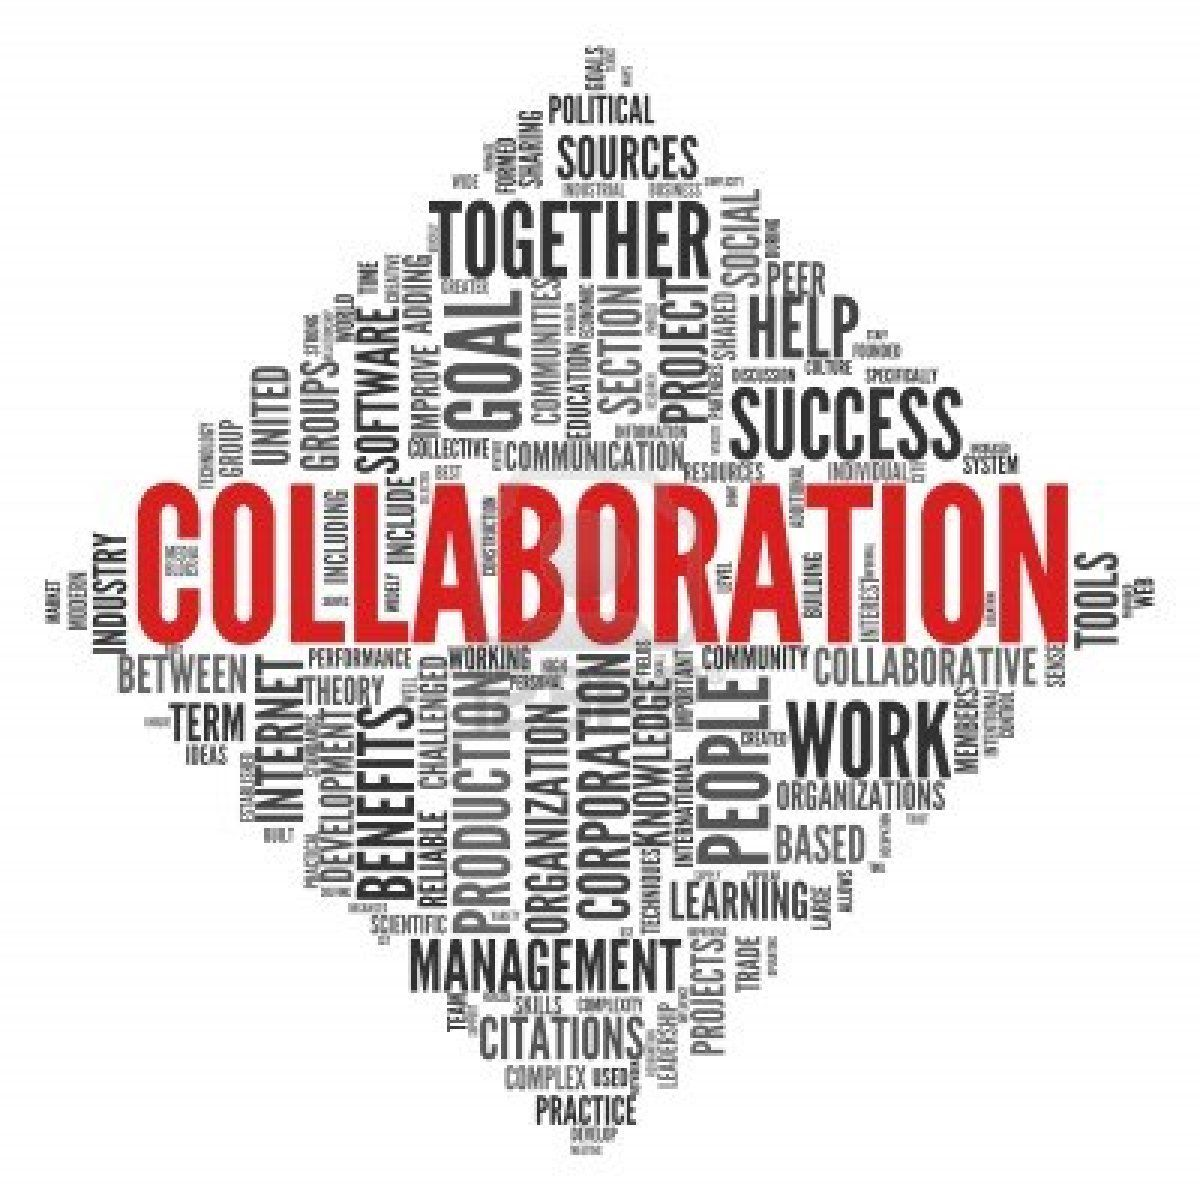 17 Best images about Collaboration on Pinterest | Success quotes ...